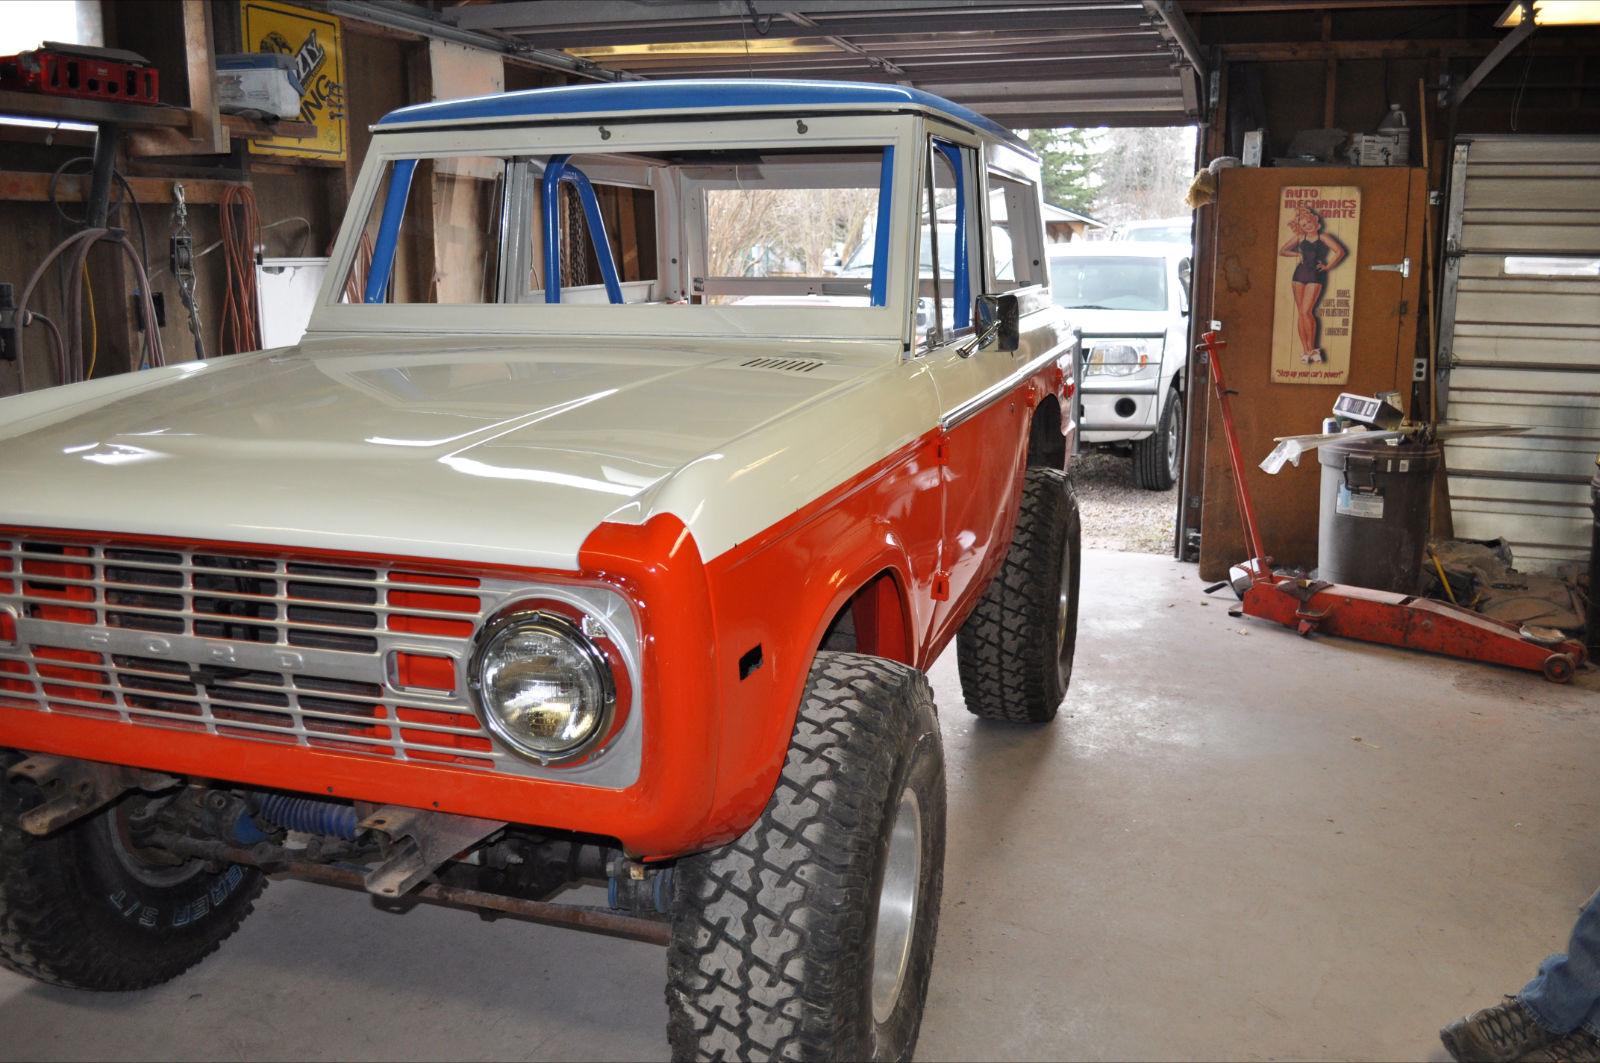 1972 Ford Bronco Ignition Wiring Diagram On Early Bronco Diagrams